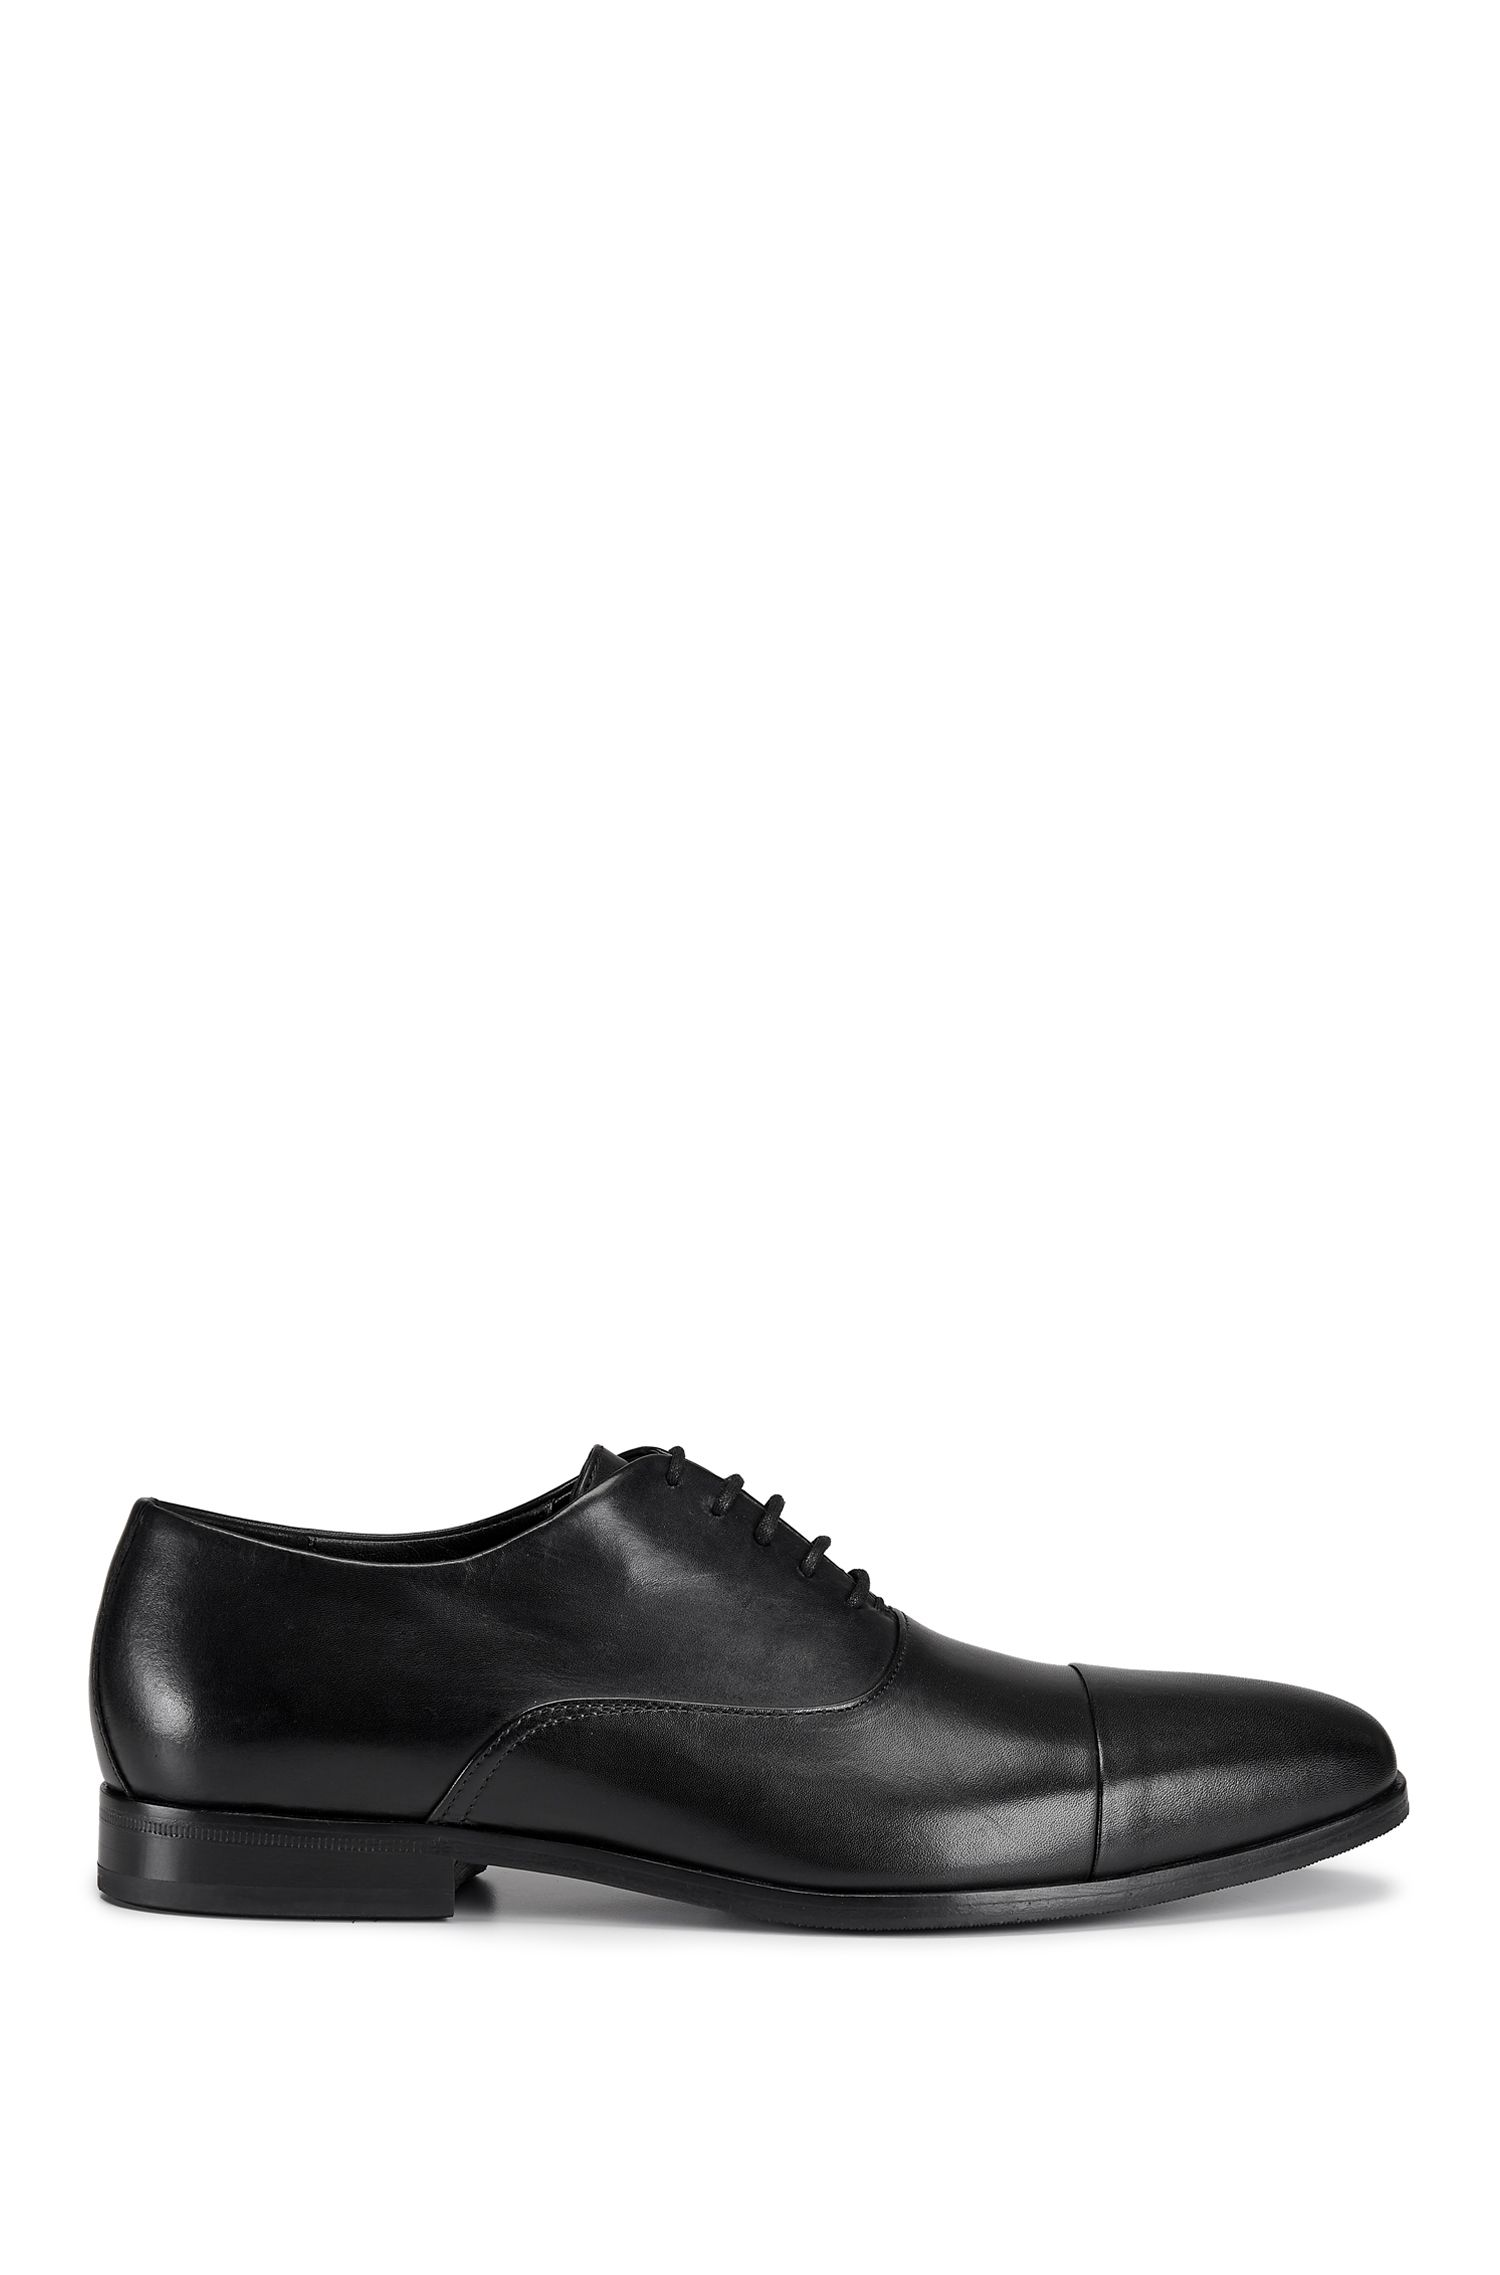 Leather Oxford Dress Shoe | Highline Oxfr Buct